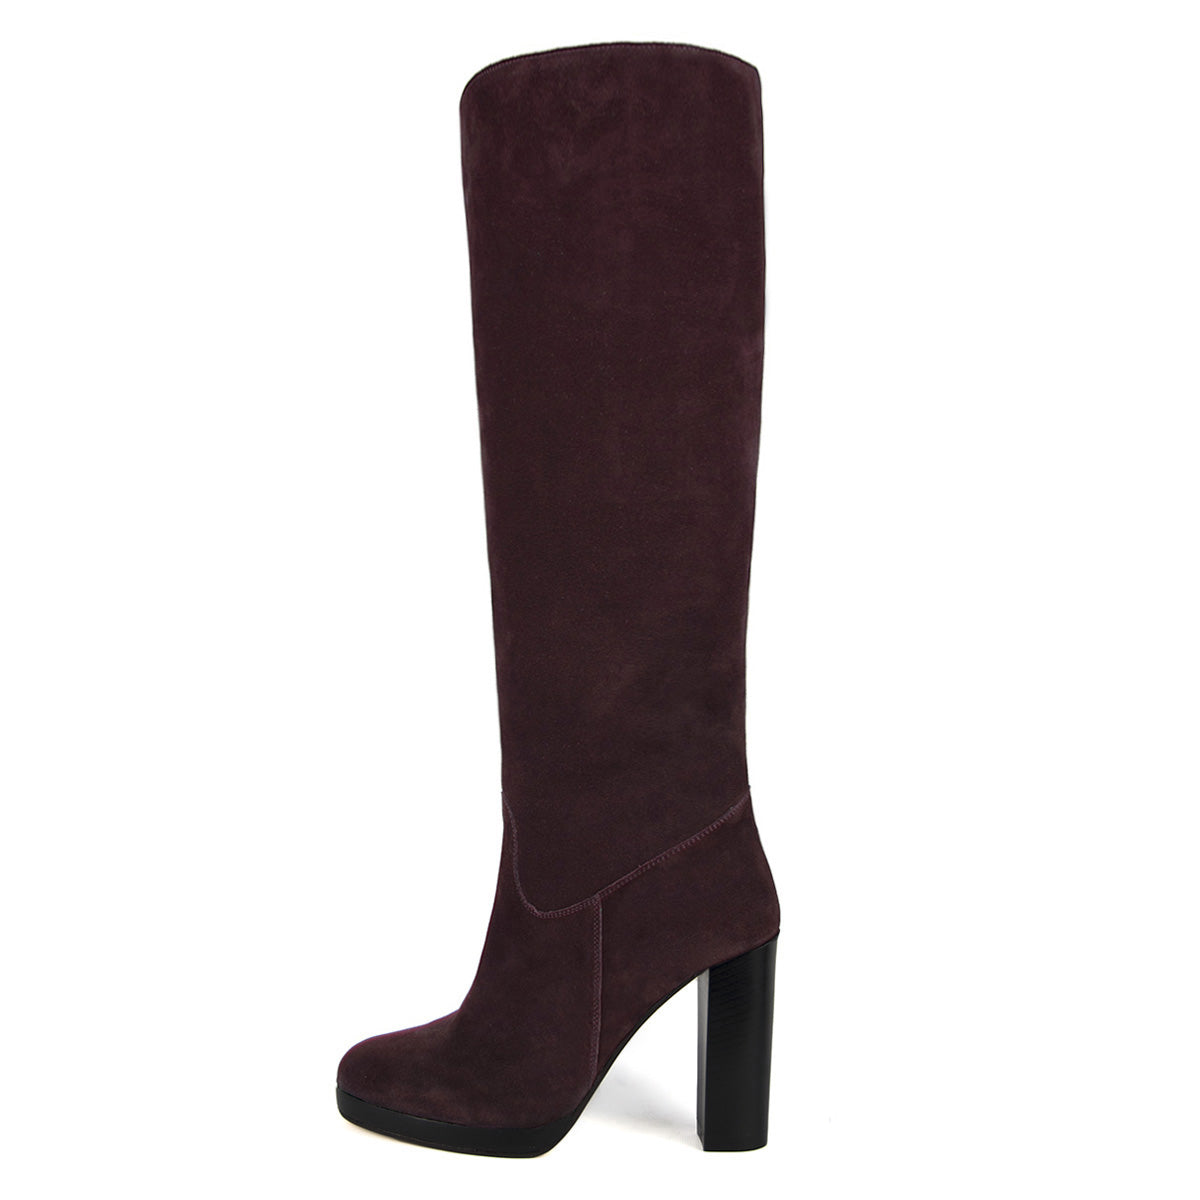 Ribes suede, burgundy - wide calf boots, large fit boots, calf fitting boots, narrow calf boots